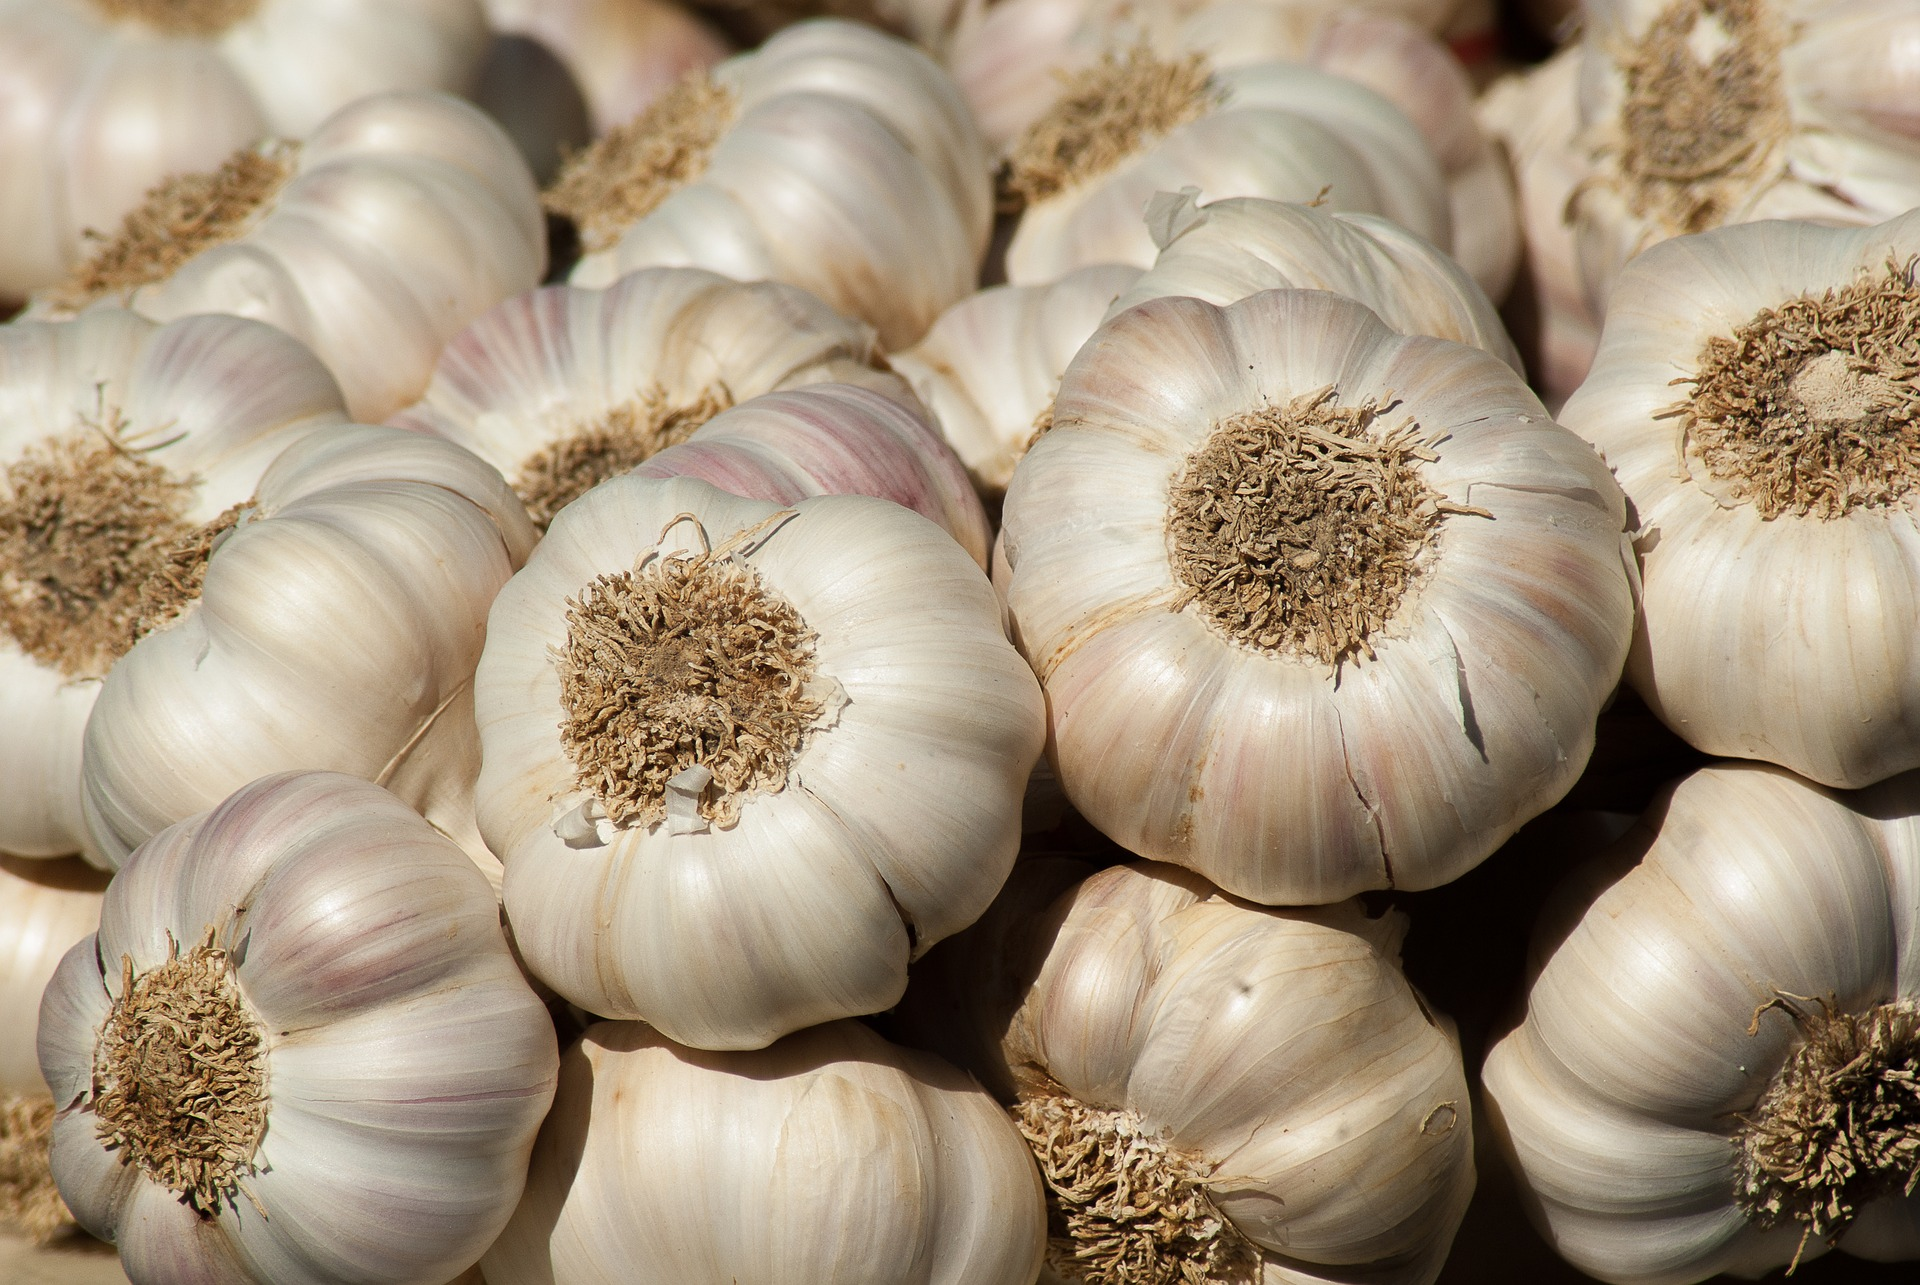 crackdown on garlic smugglers